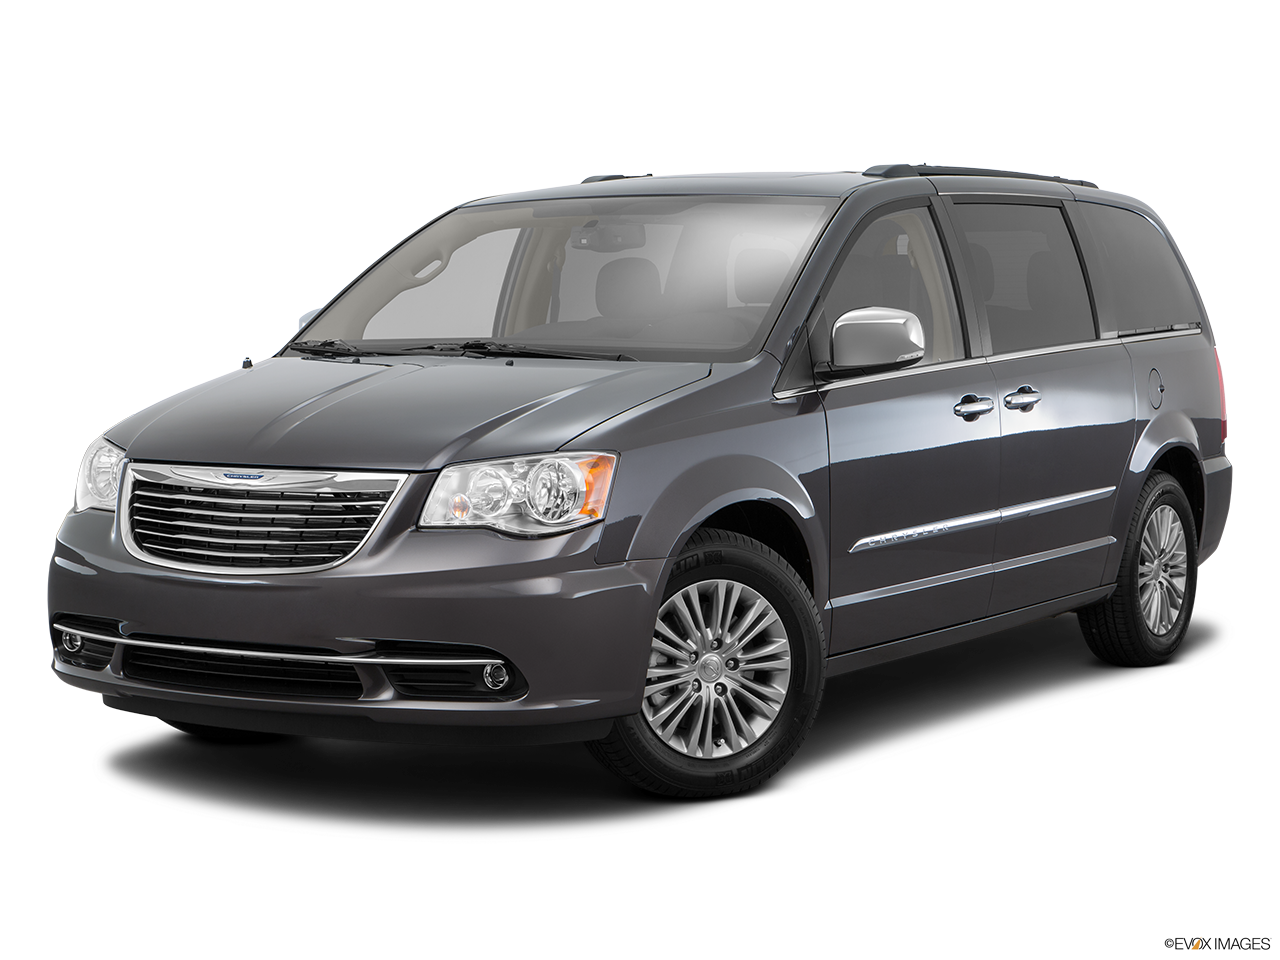 Test Drive A 2016 Chrysler Town and Country at John L Sullivan Chrysler Dodge Jeep Ram in Yuba City